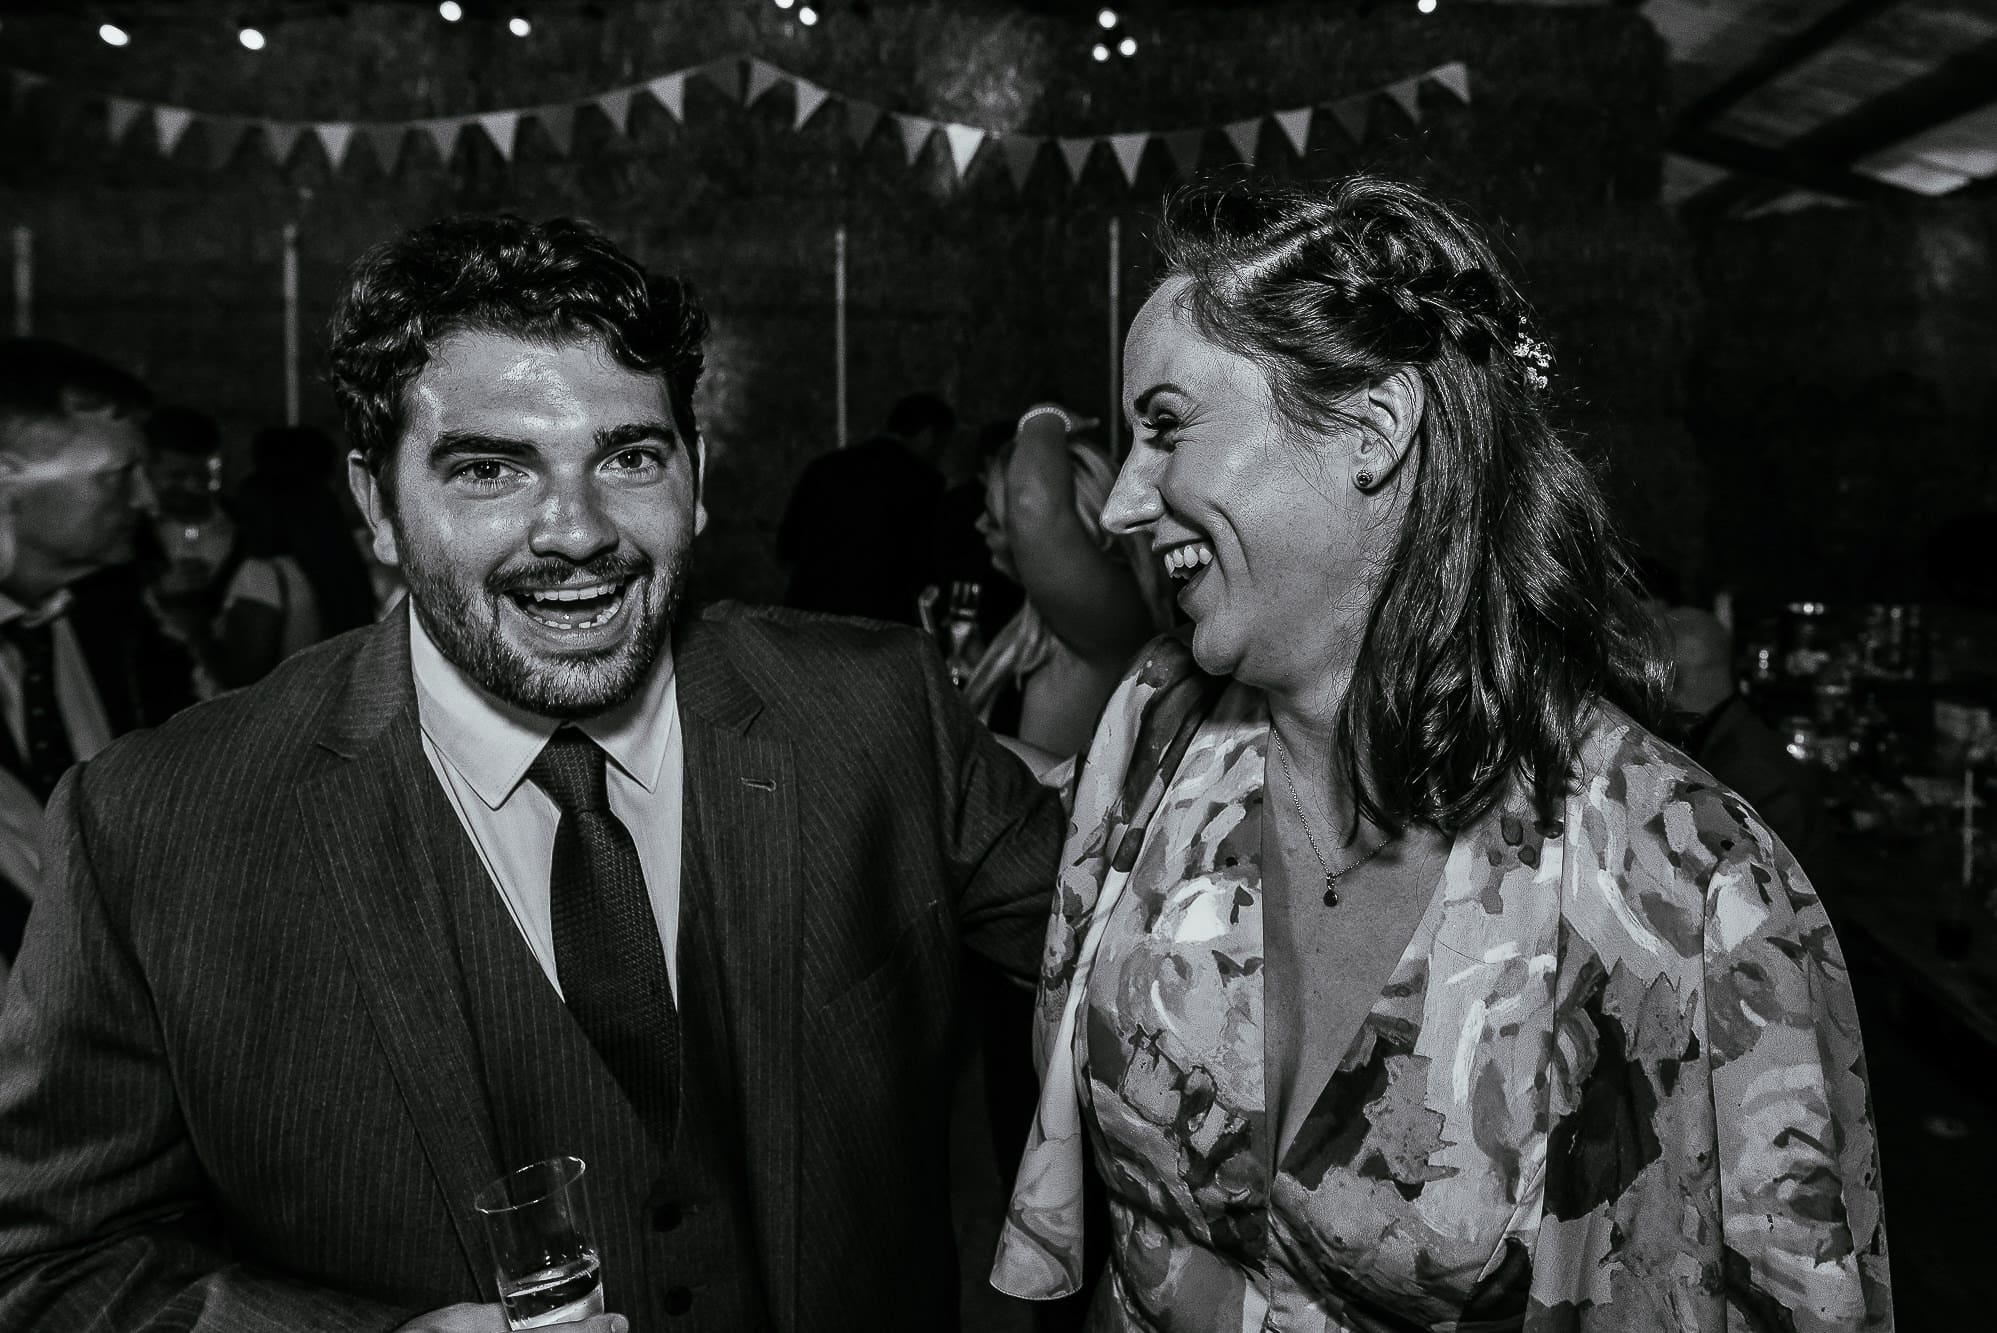 Guests laughing on dance floor